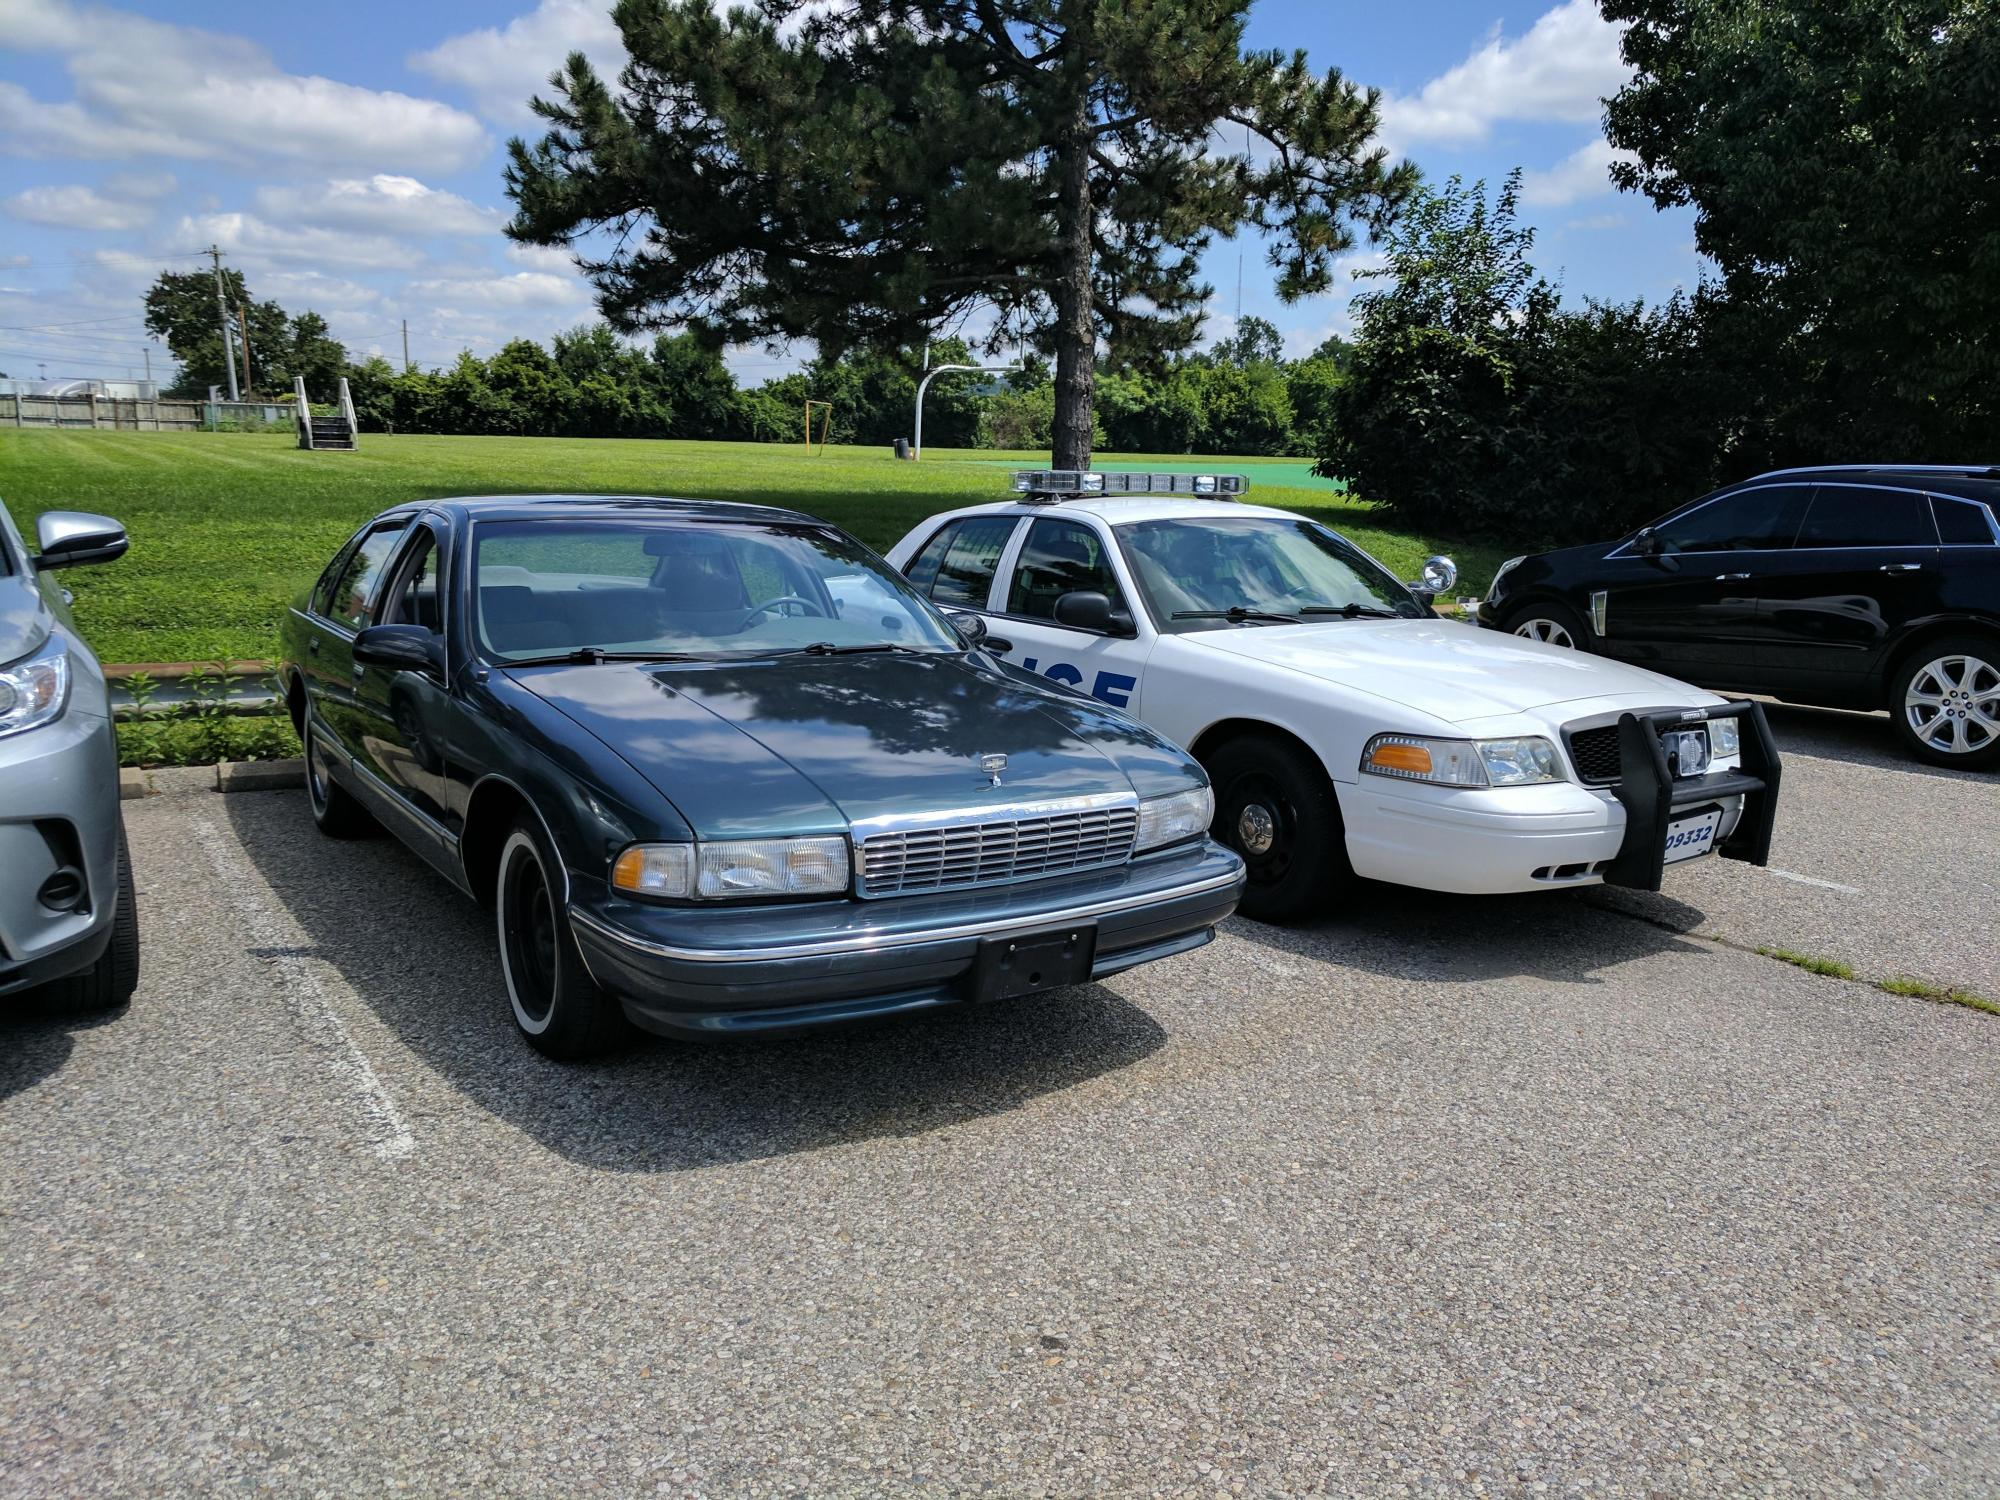 hight resolution of my new ride to me a 1995 chevrolet caprice classic with the lt1